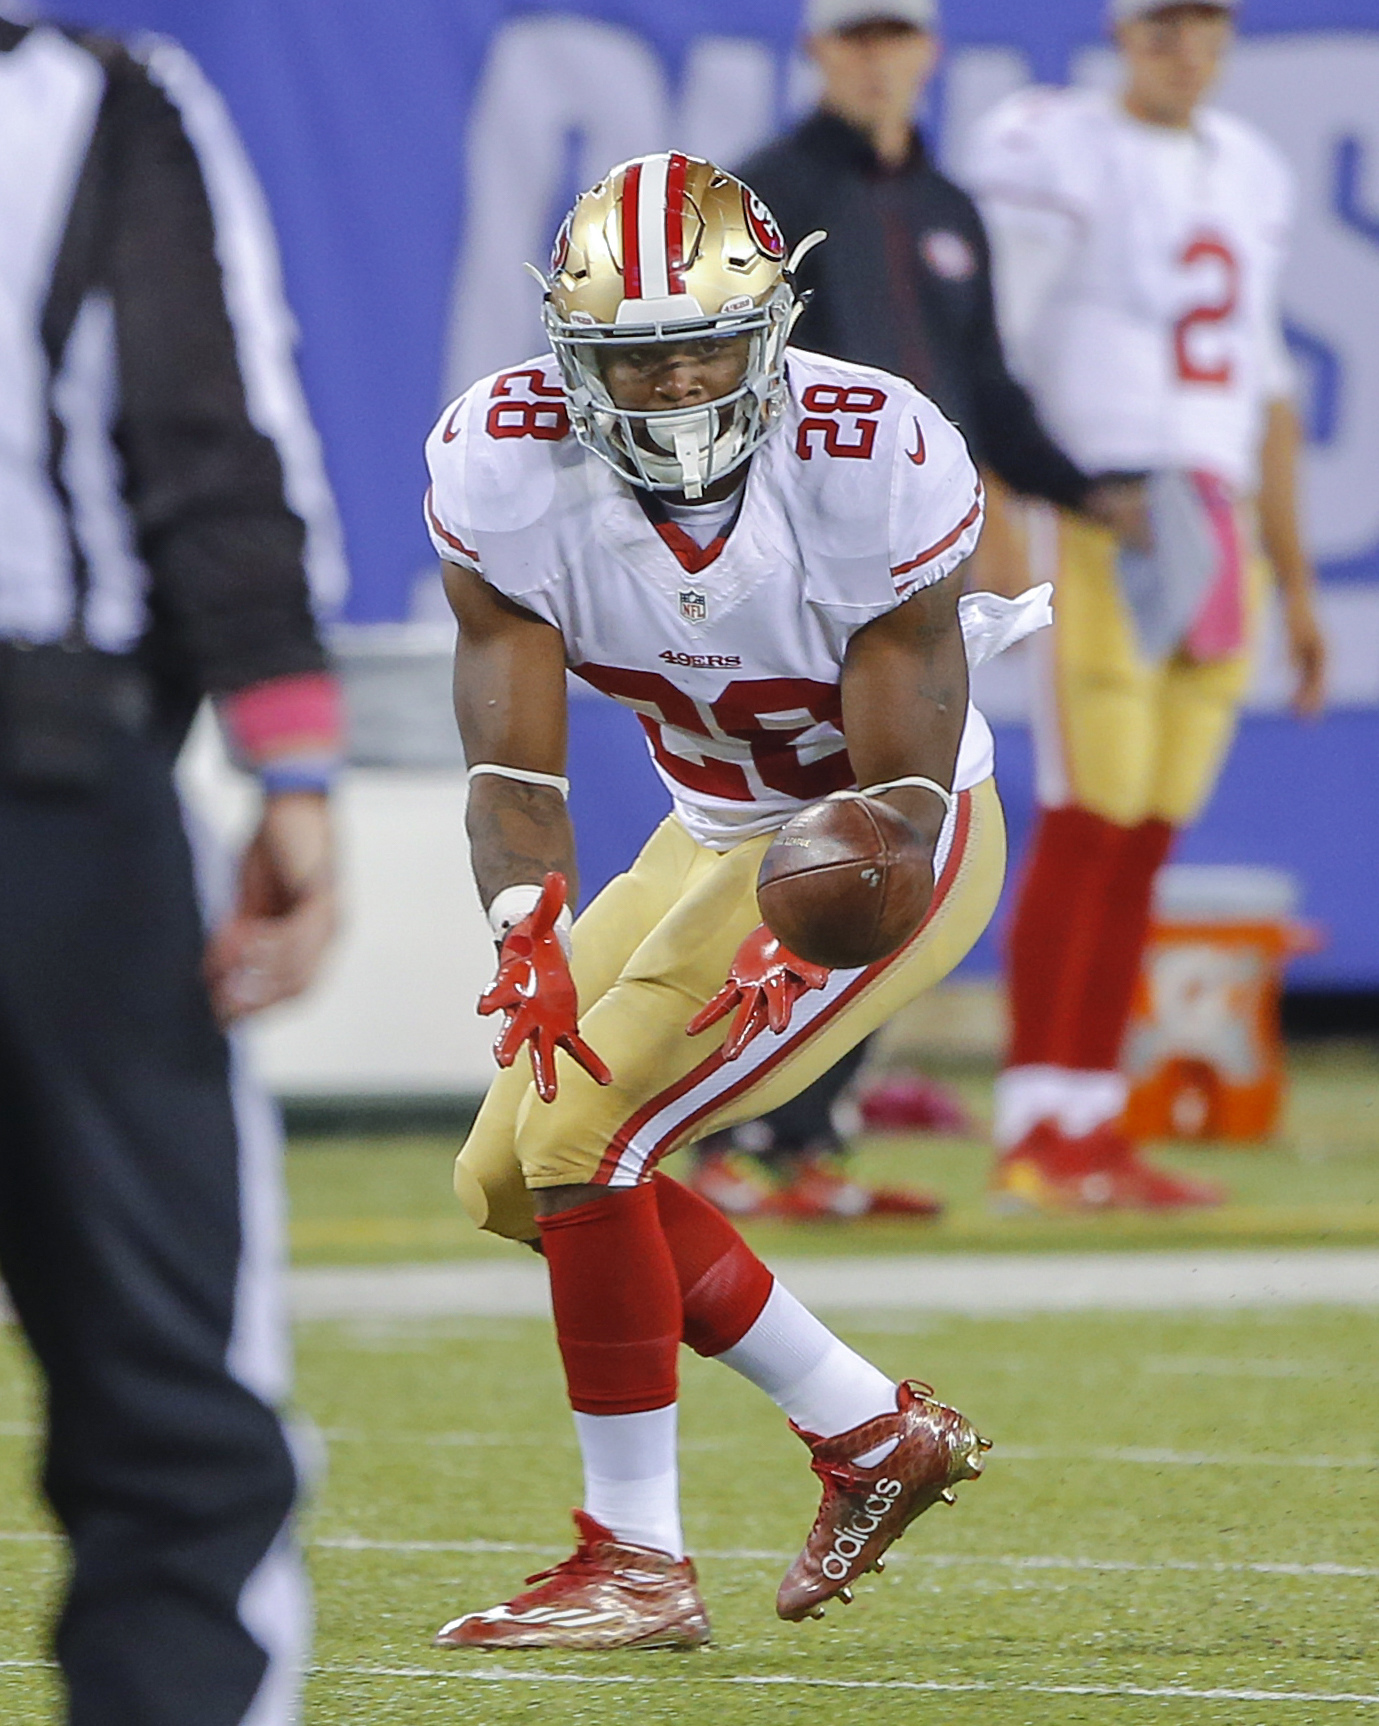 Running back Carlos Hyde catches a pass against the Giants